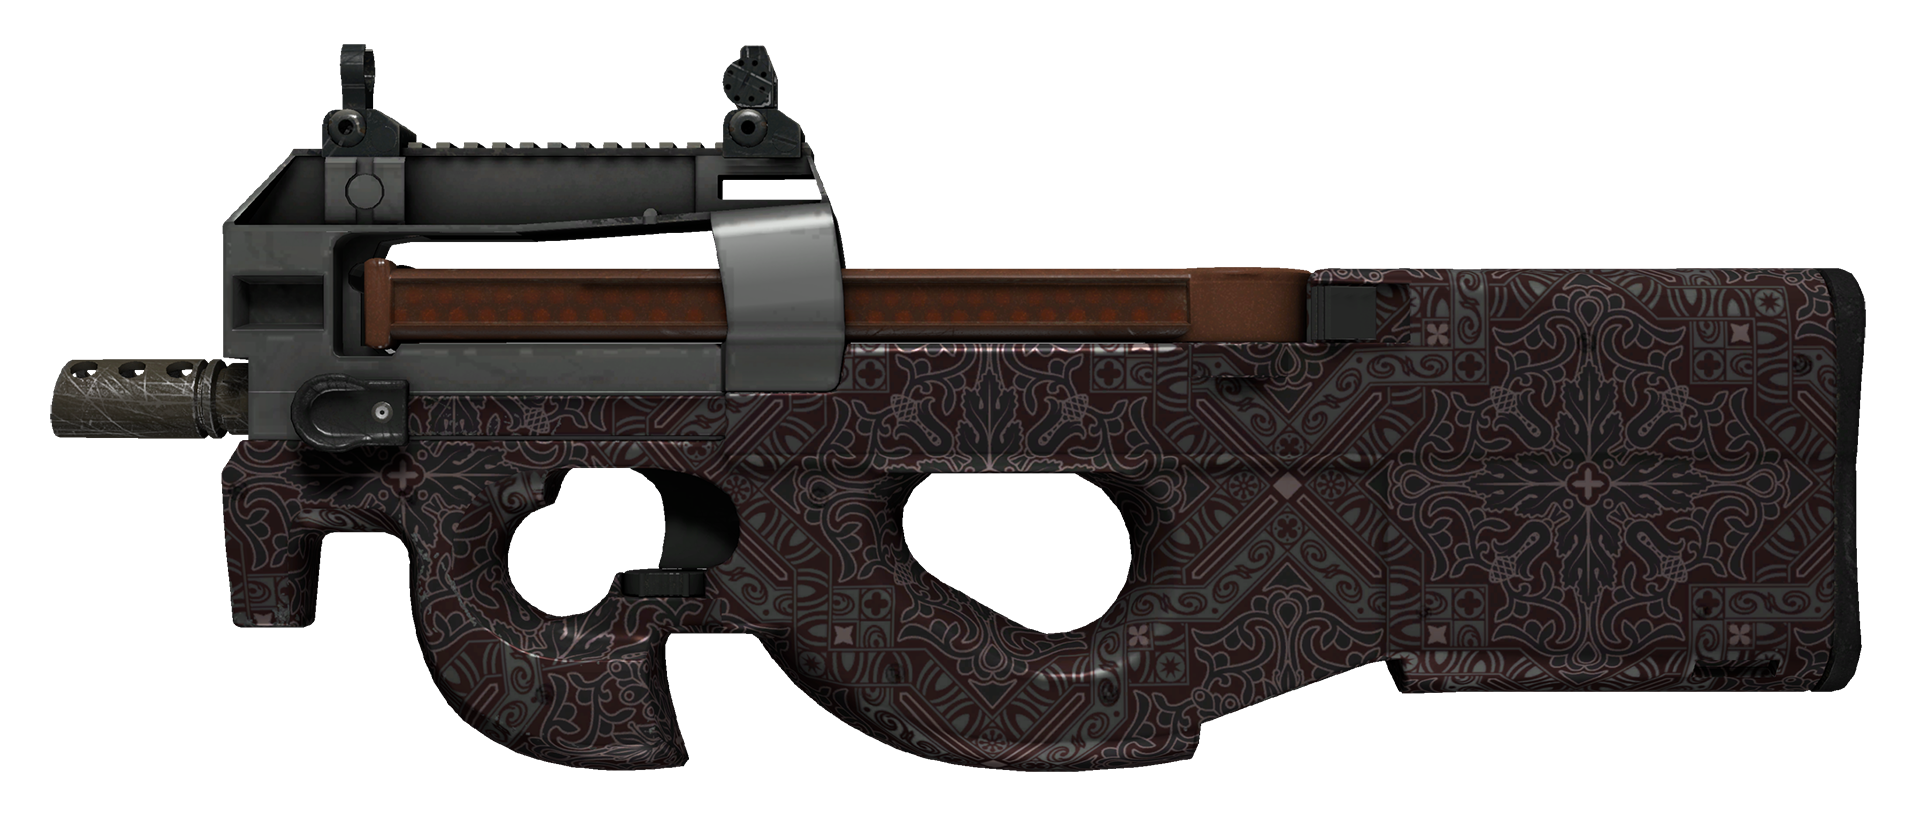 P90 Baroque Red Large Rendering